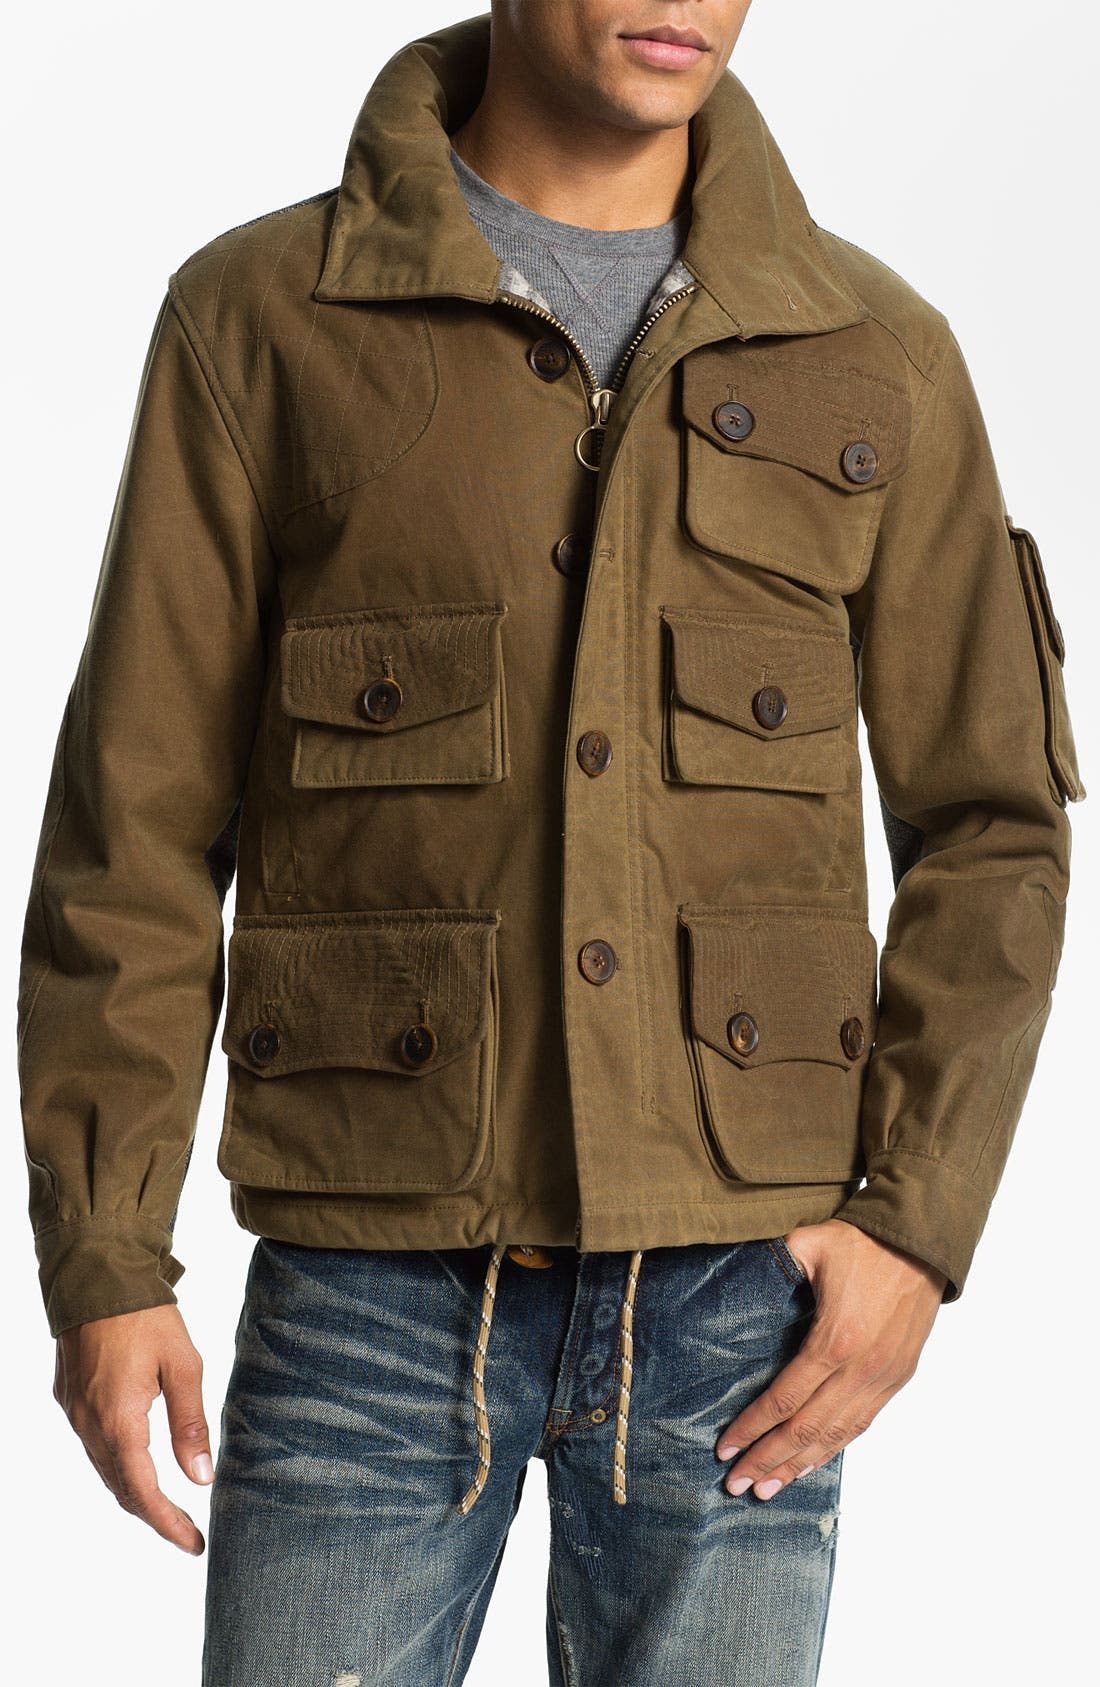 Alternate Image 1 Selected - PRPS 'Utility' Waxed Canvas Field Jacket